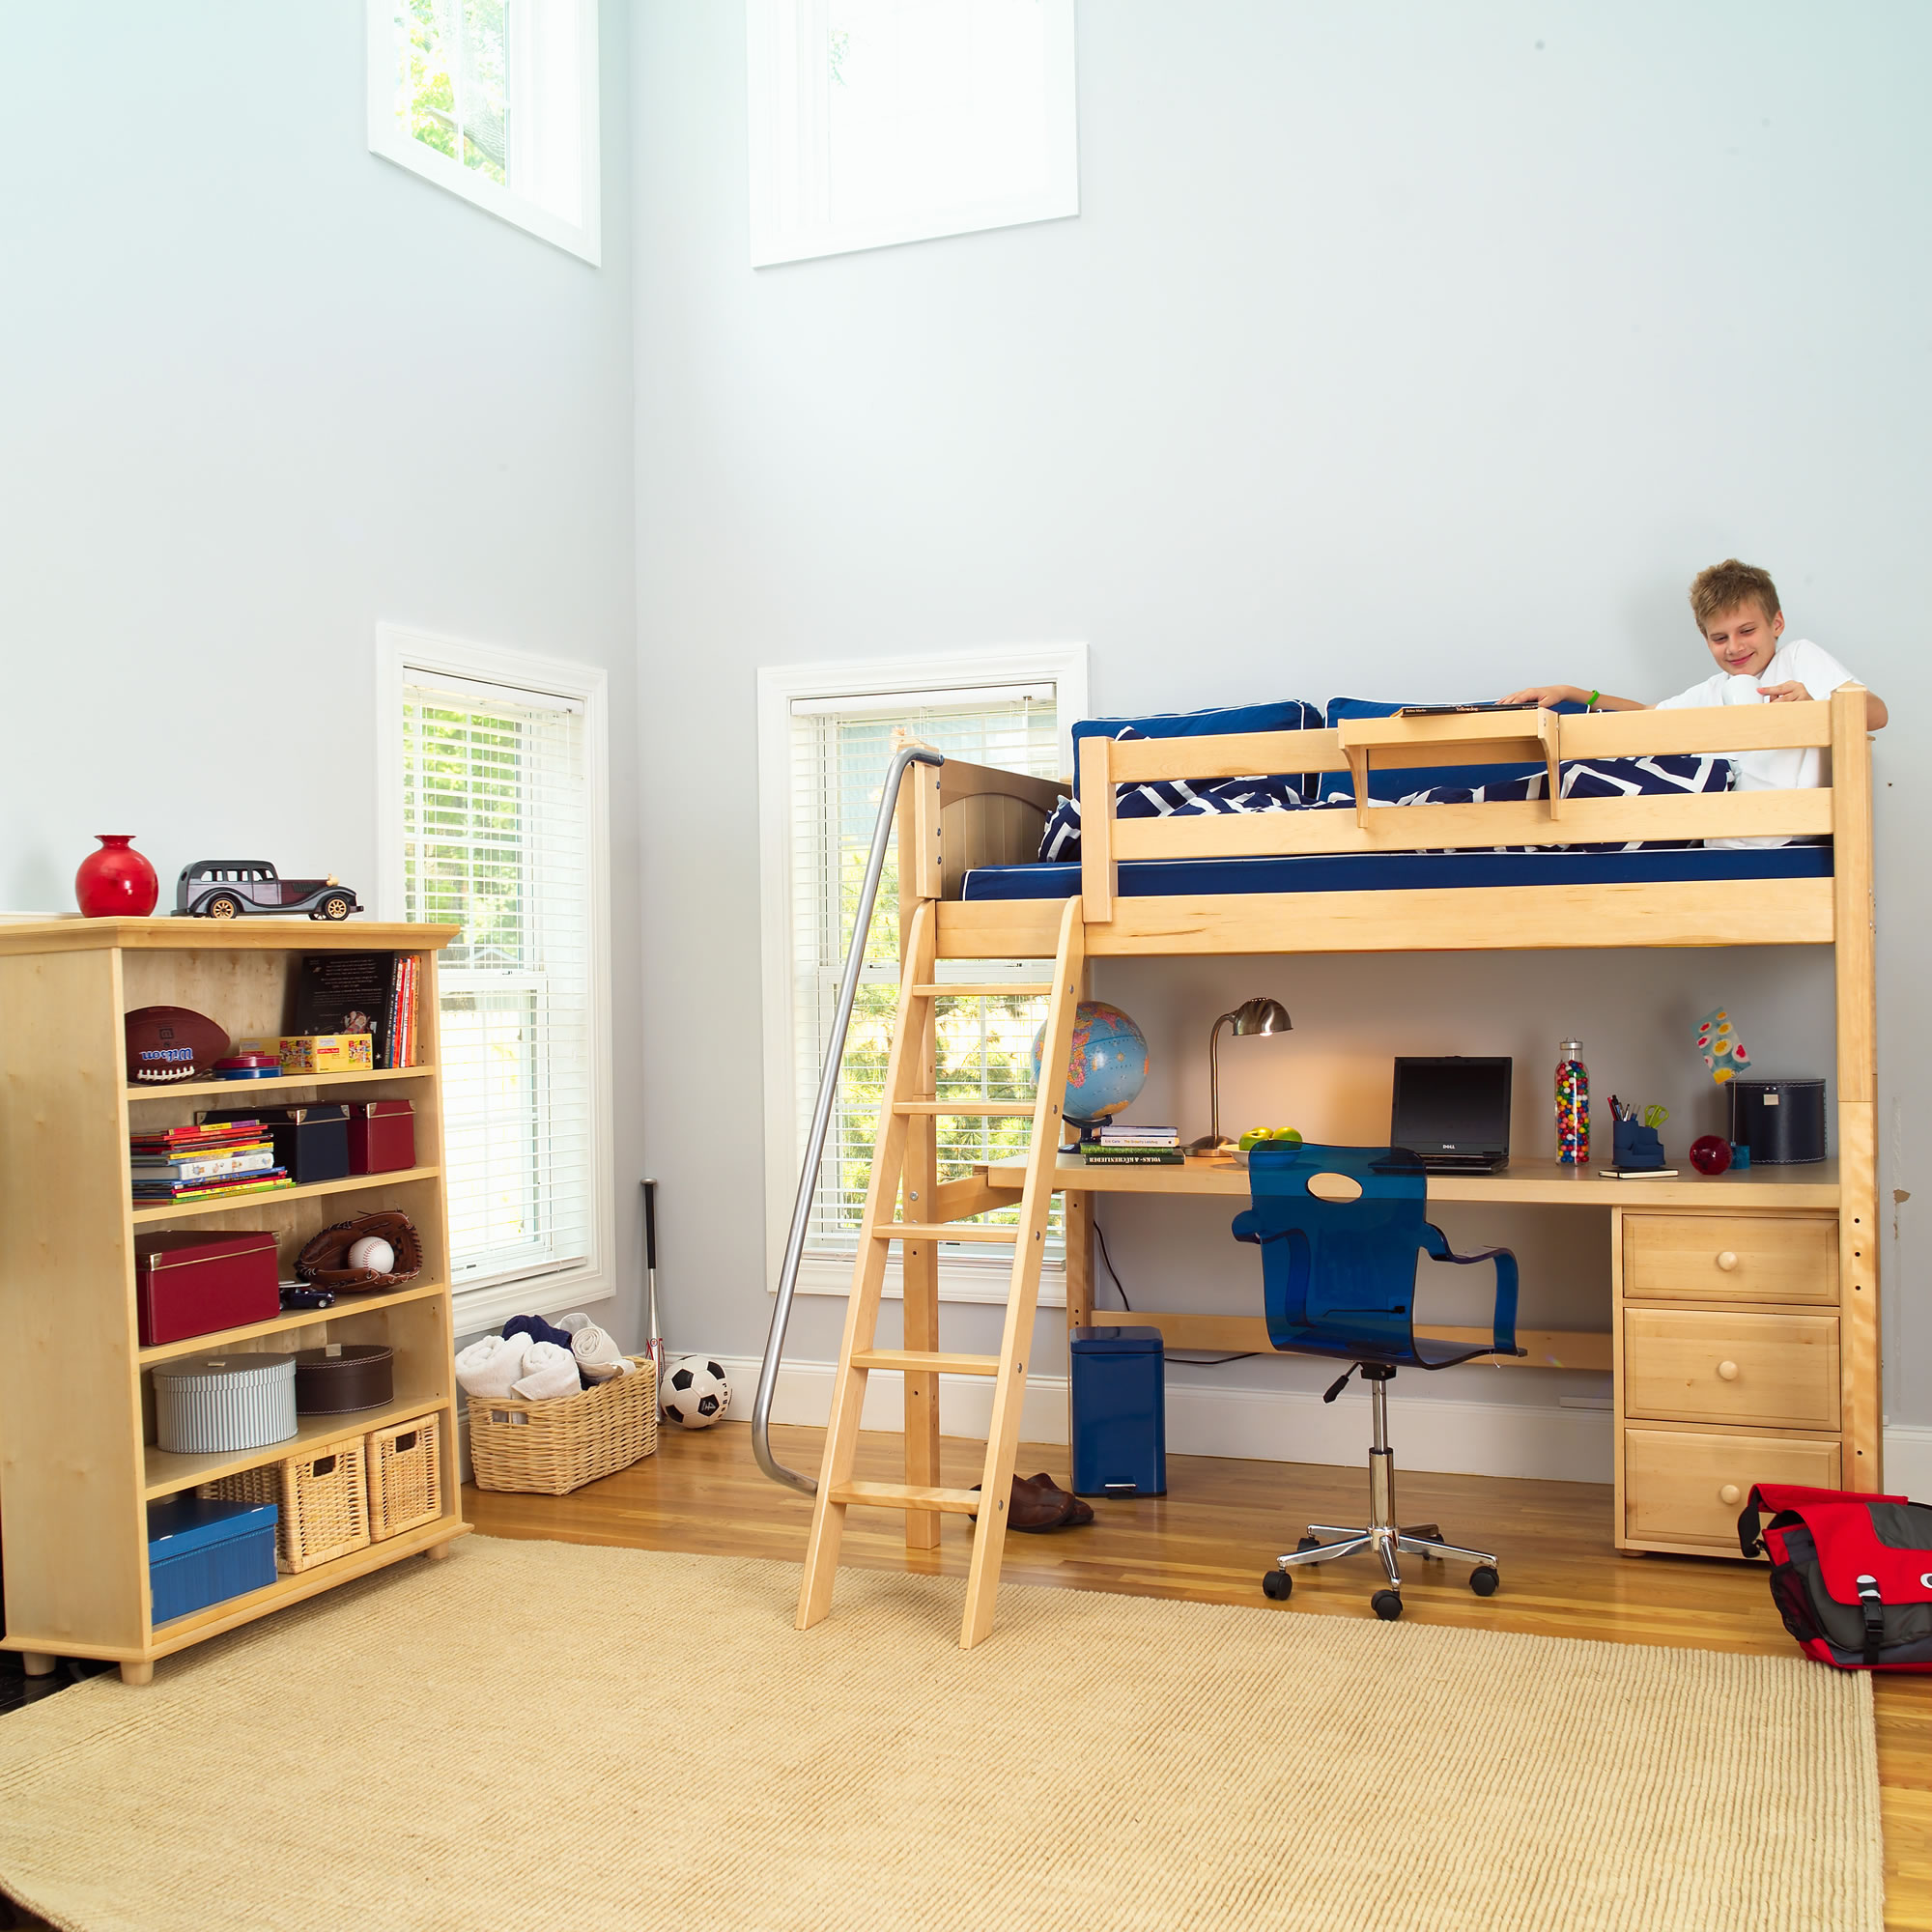 Enjoy Playing and Studying inside Wide Bedroom using Oak Bunk Bed with Desk and Blue Acrylic Chair